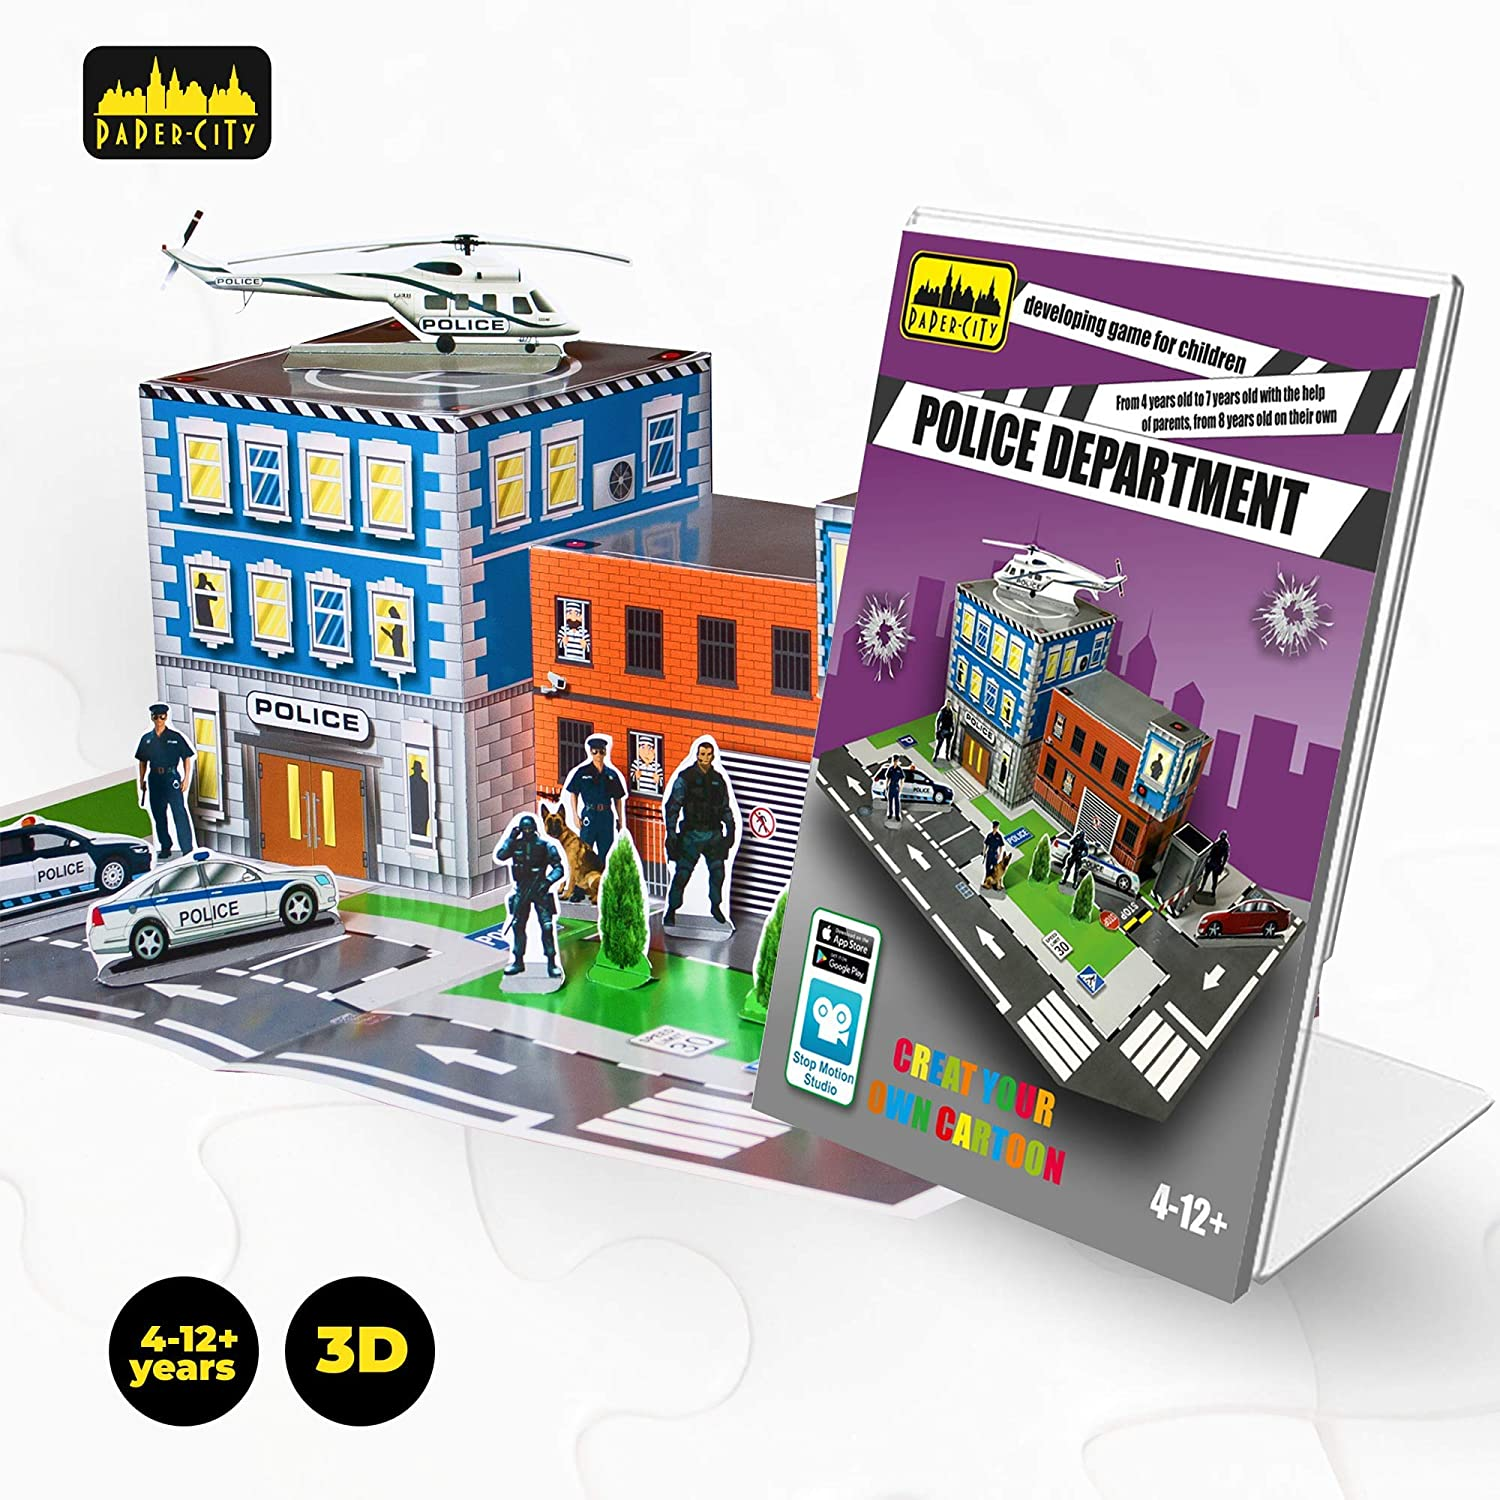 PAPER CITY Police Station Puzzle — DIY 3D Model Play KIT for Kids — Best  Family Arts and Crafts Activity — Best Toy Gift for Boys Age 4-12 Years